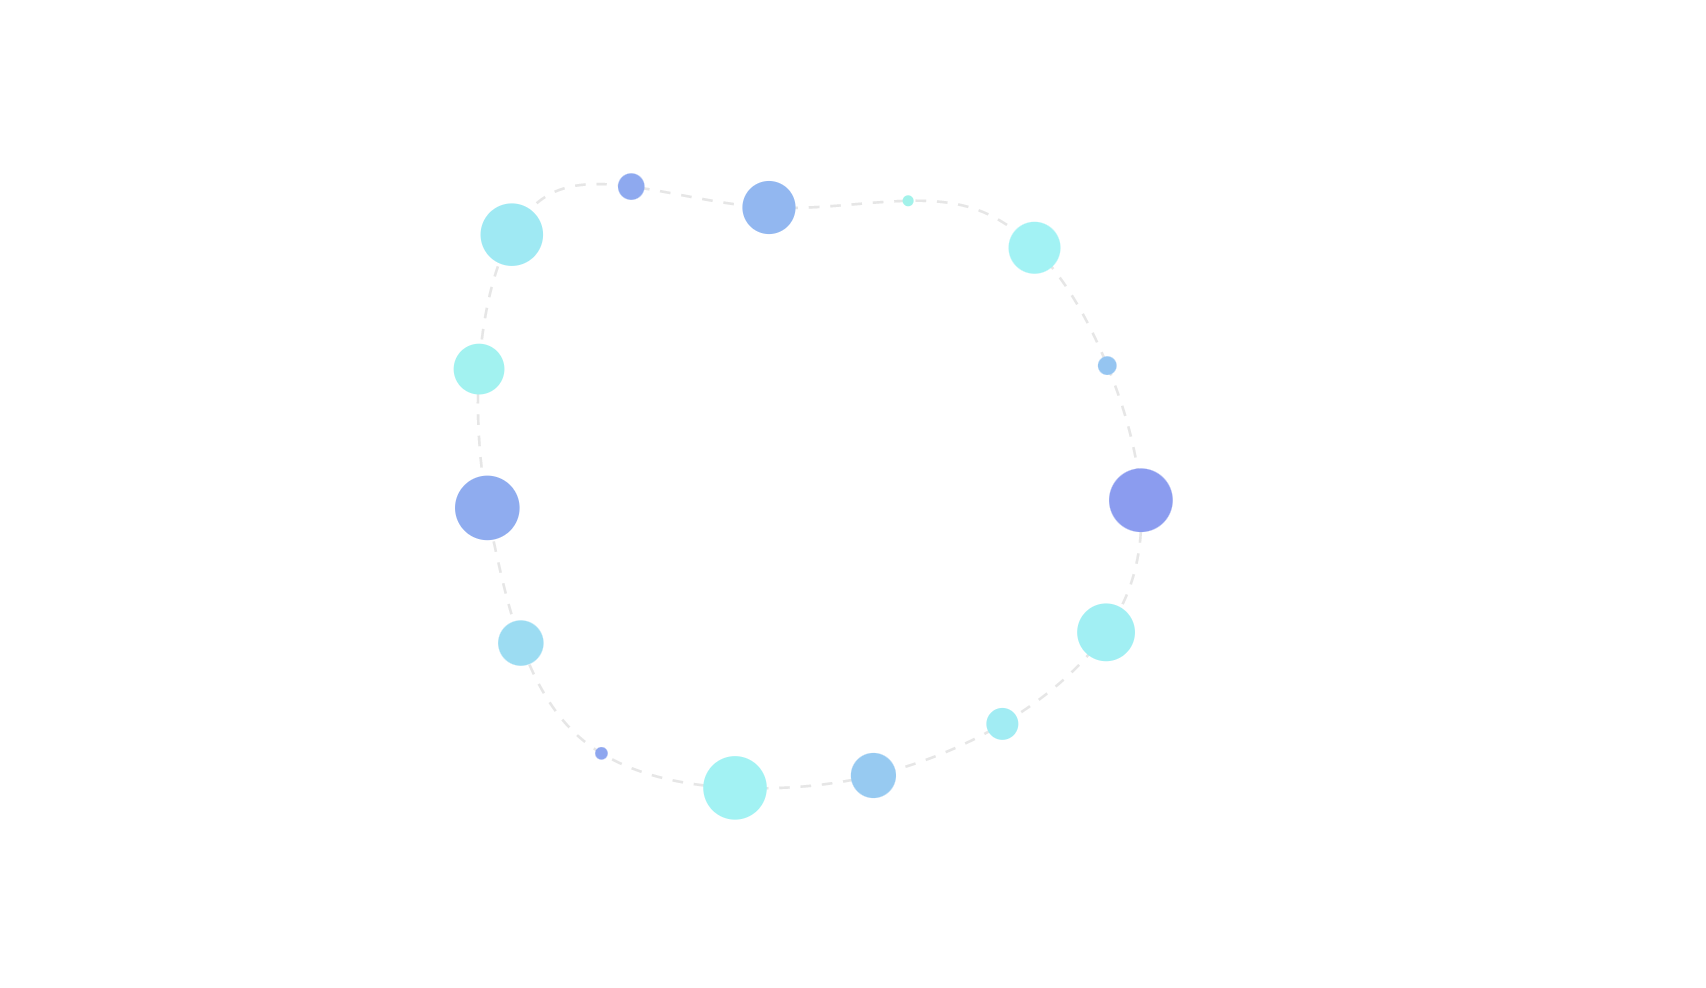 Generative art with colored circles placed along a path